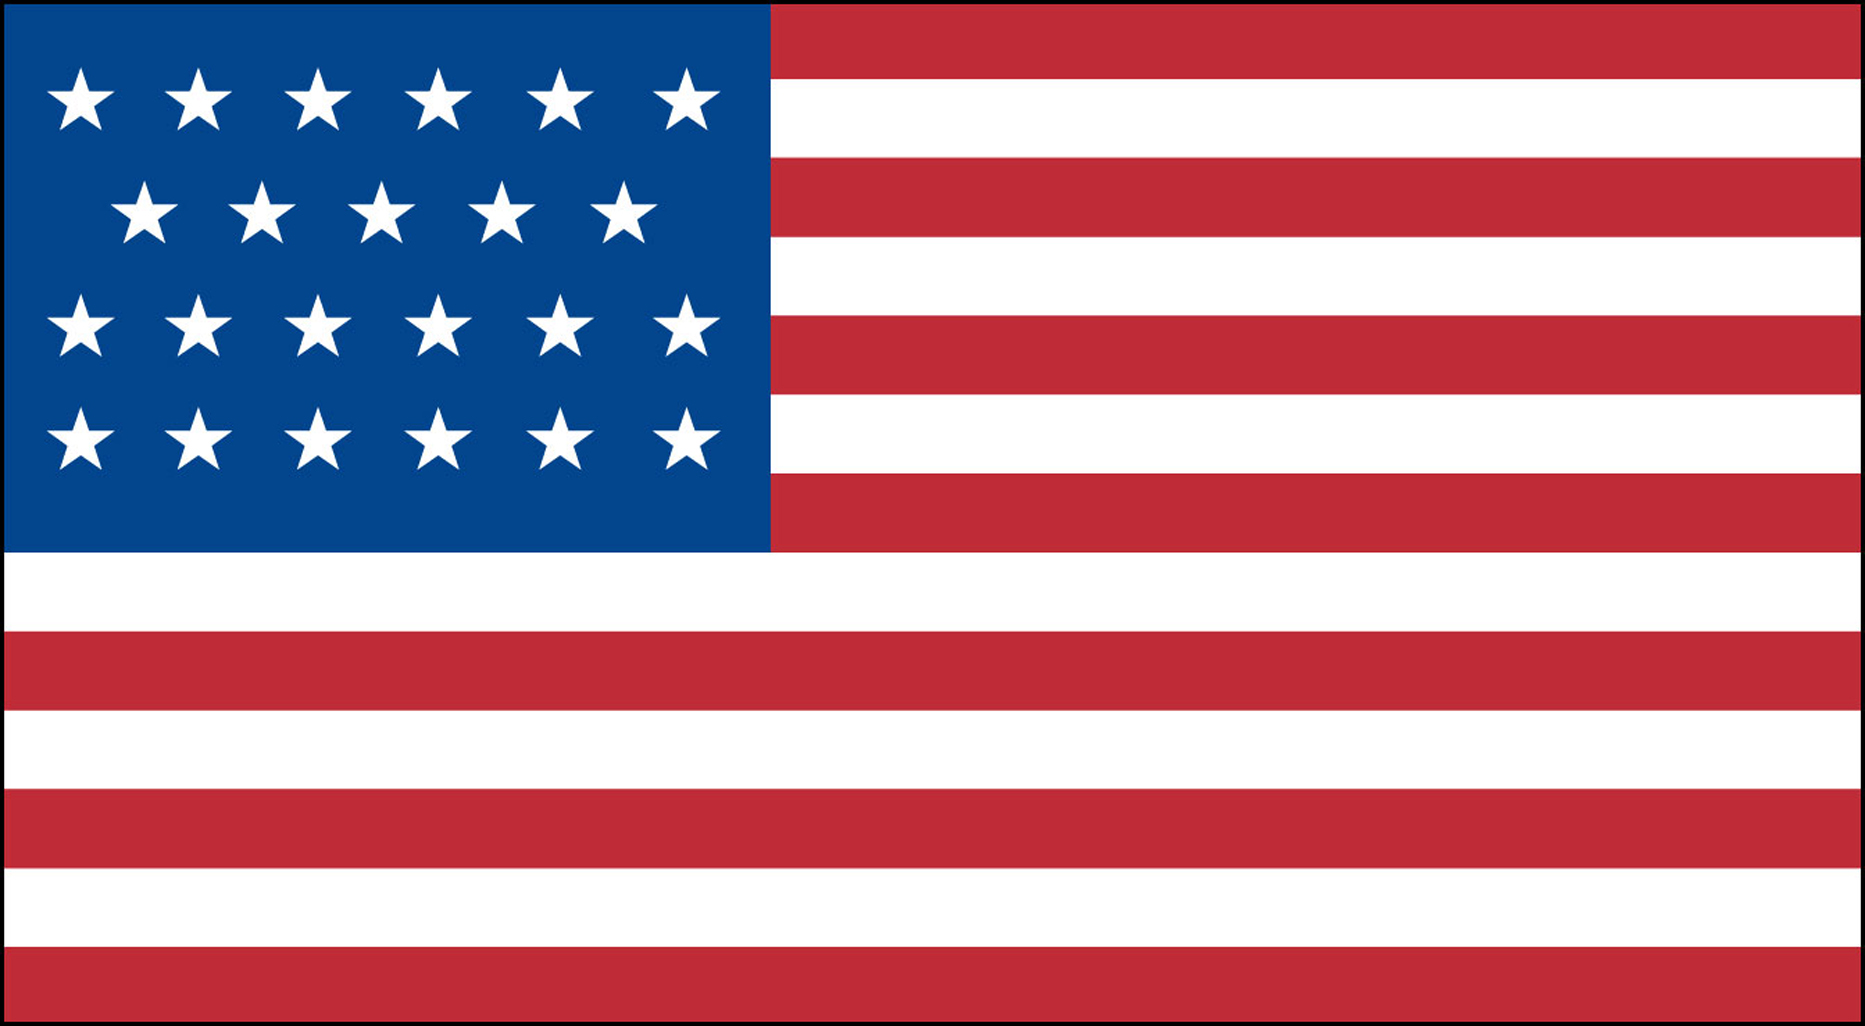 american flags made in usa from flagsexpo